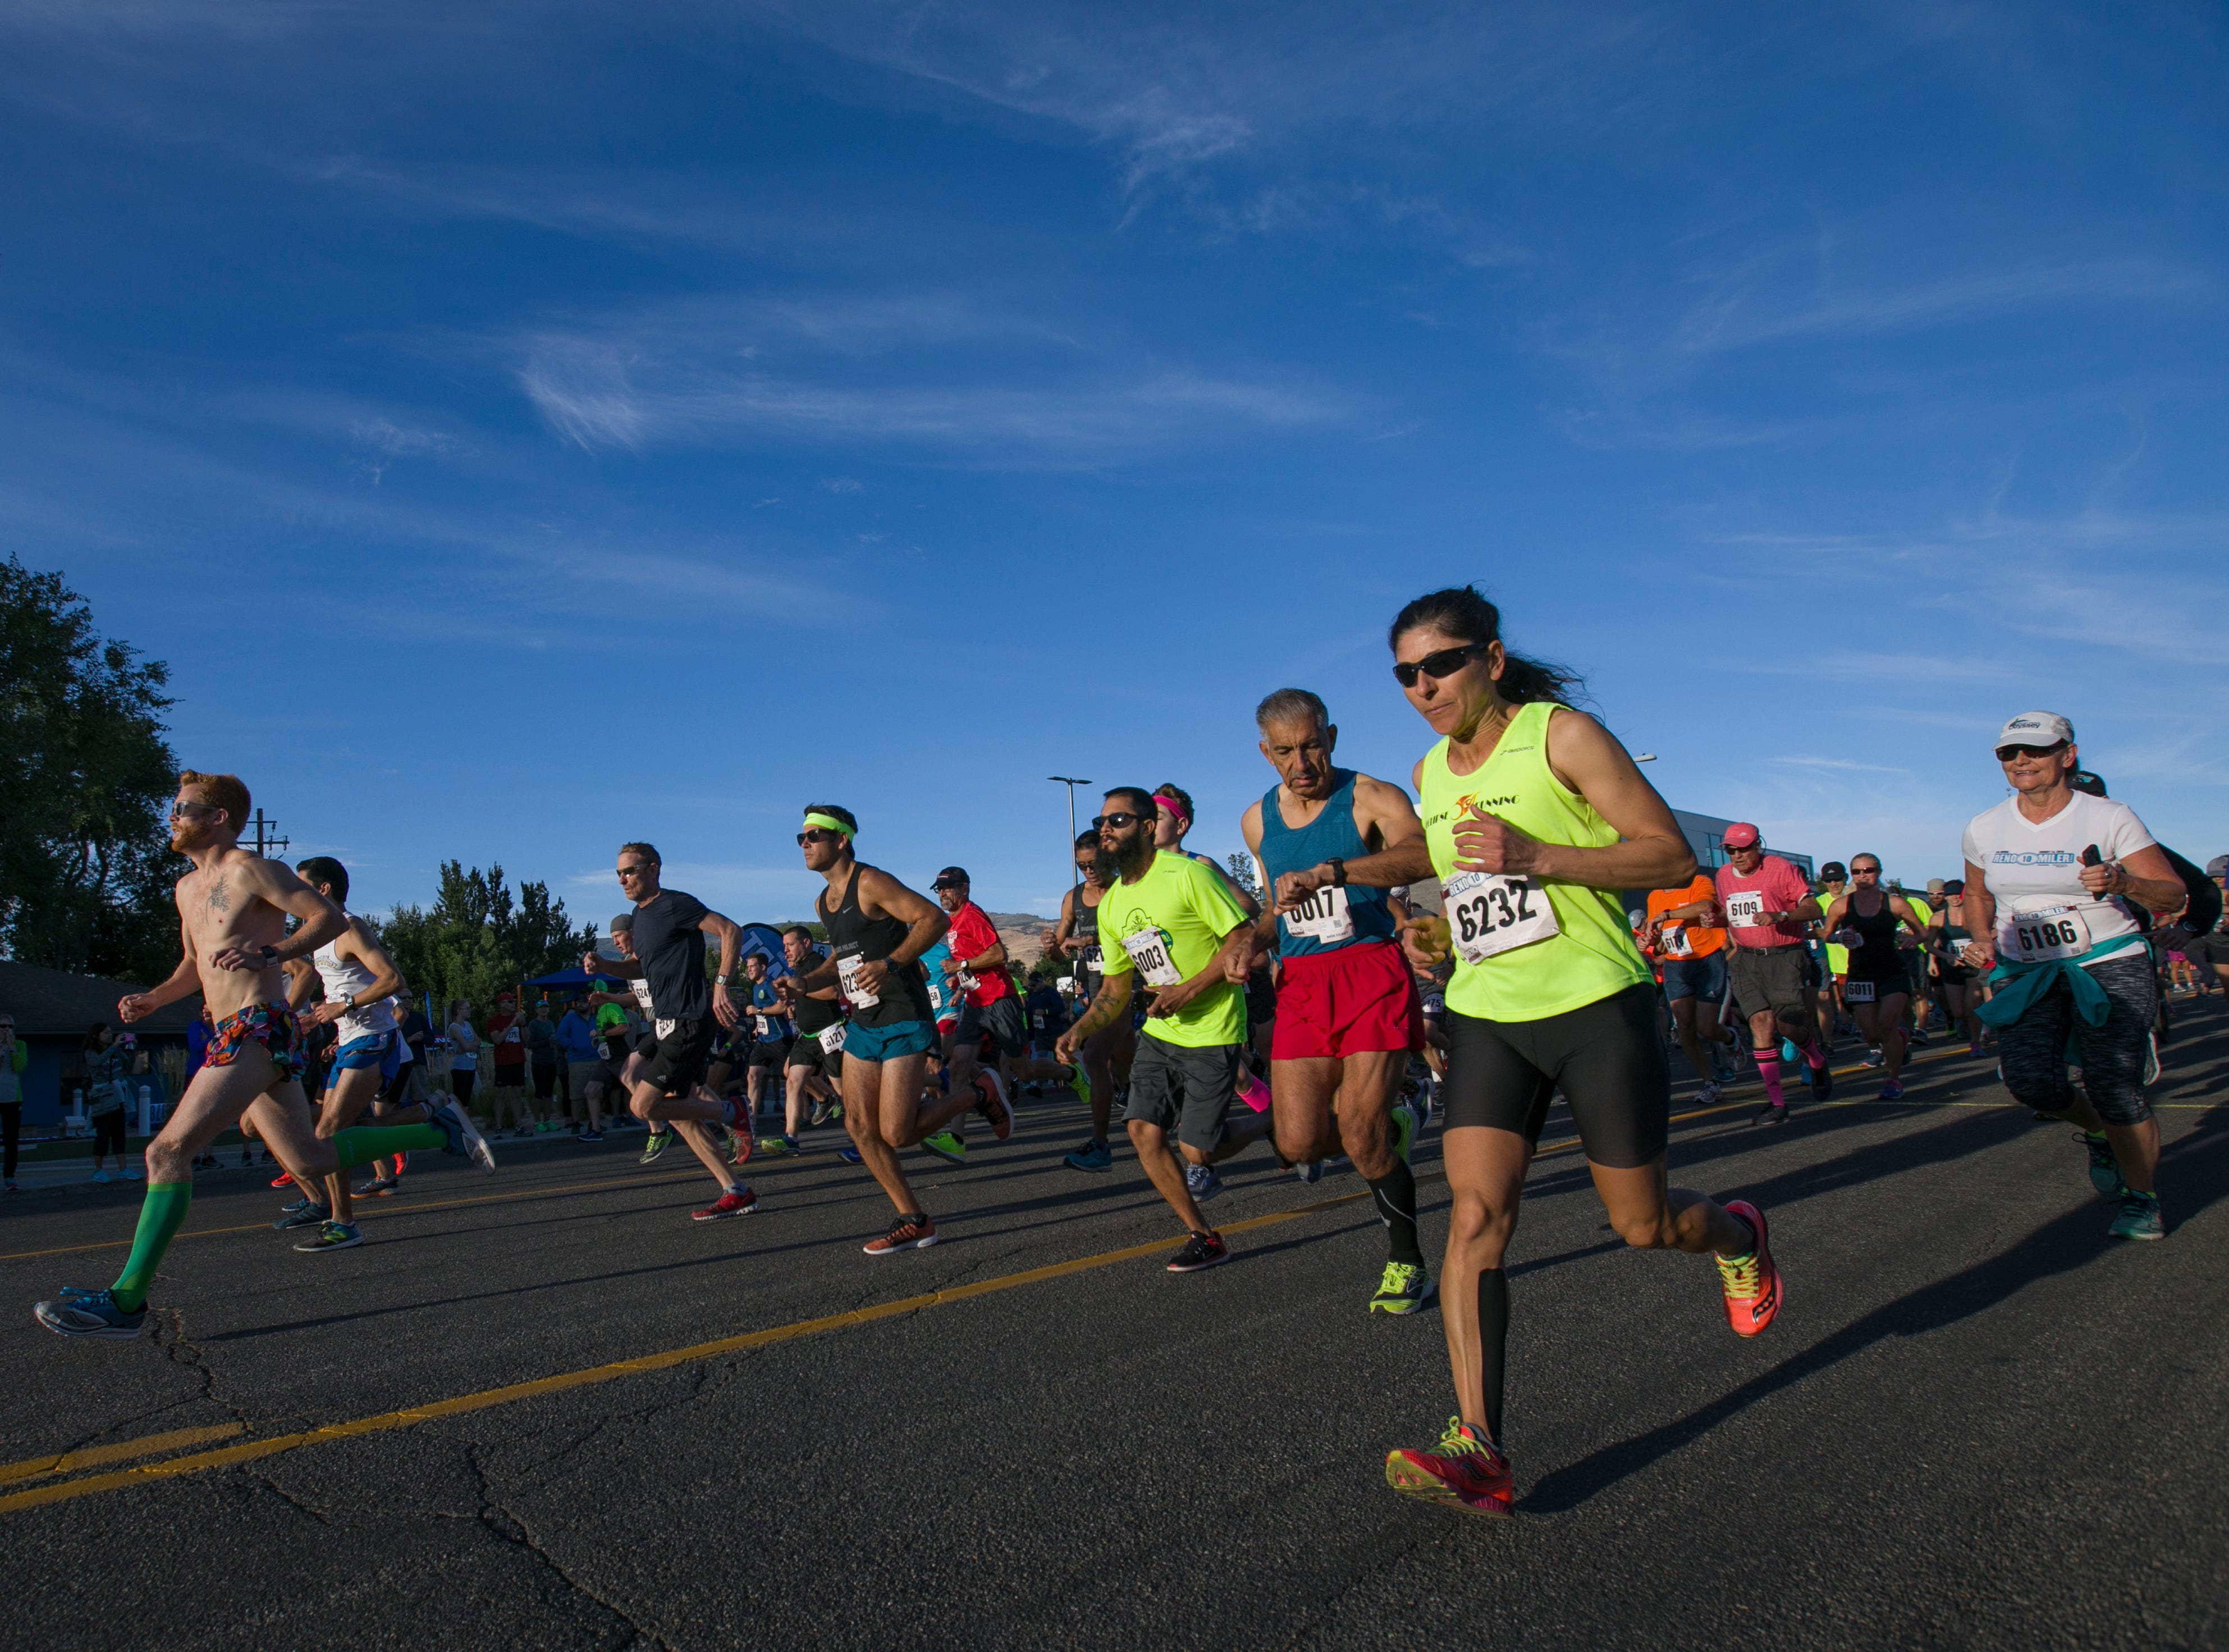 Runners start the Reno 10 Miler race during the 50th Annual Journal Jog in Reno, Nevada on Sunday, September 9, 2018.